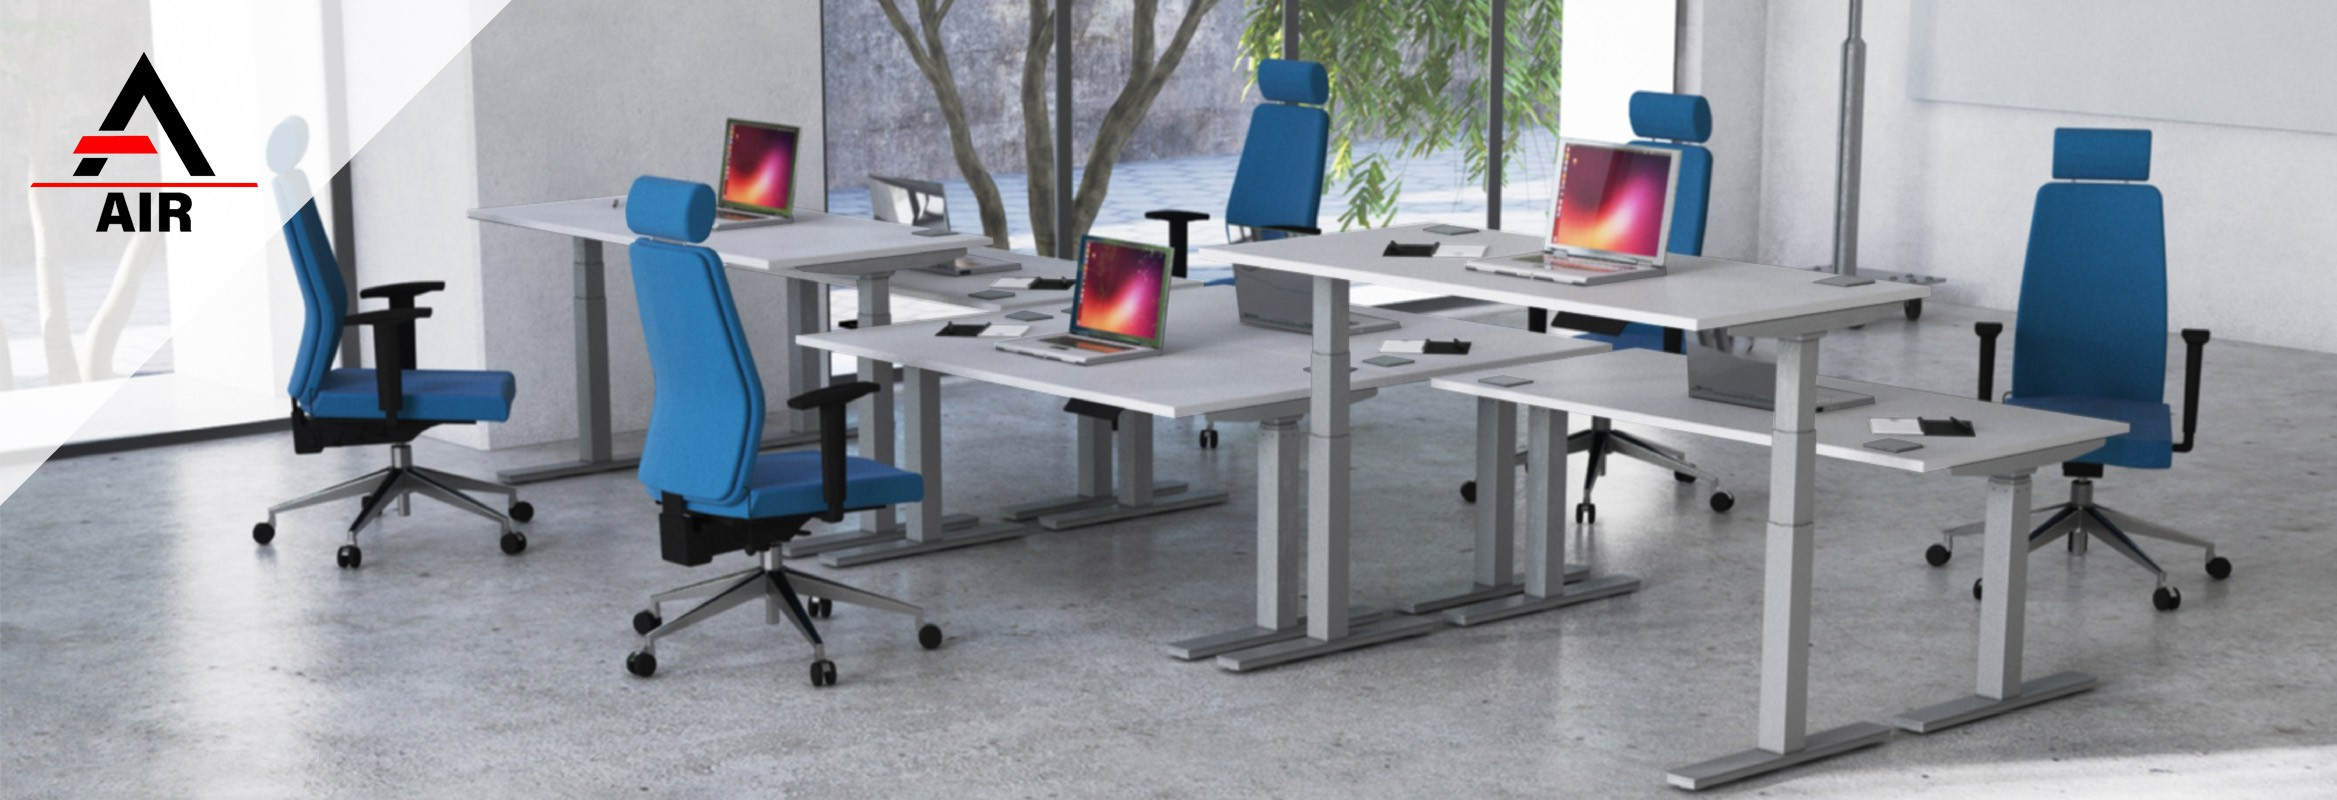 Air Height-Adjustable Desks